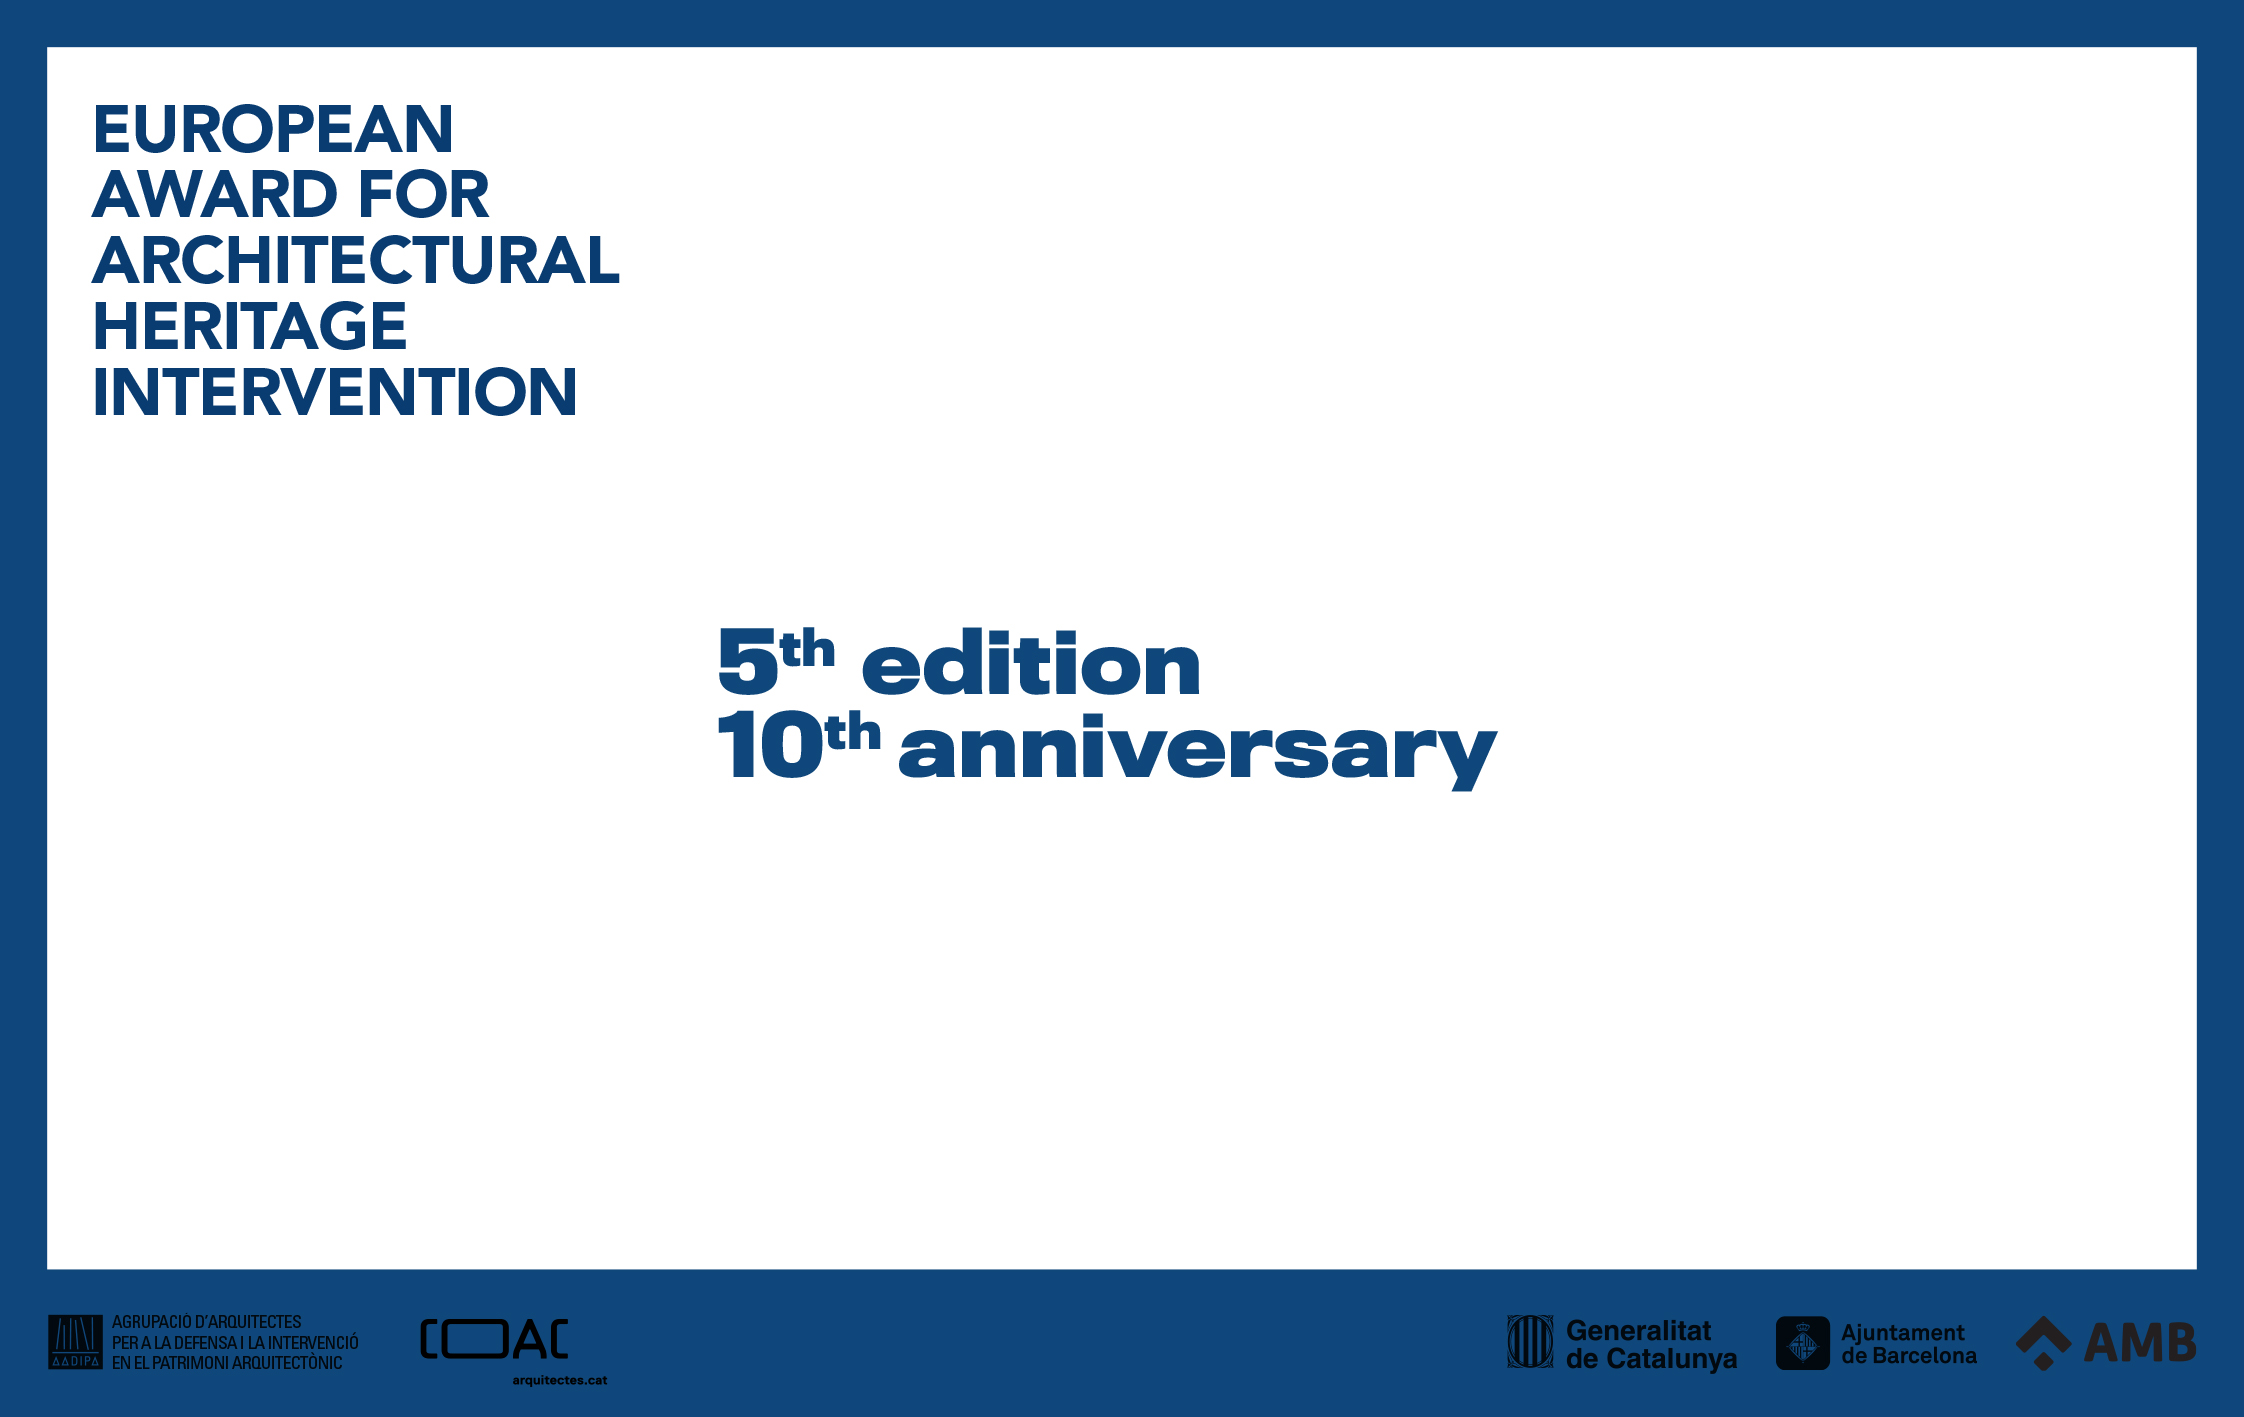 A successful 5th edition of the Award is set to coincide with the celebration of its tenth anniversary